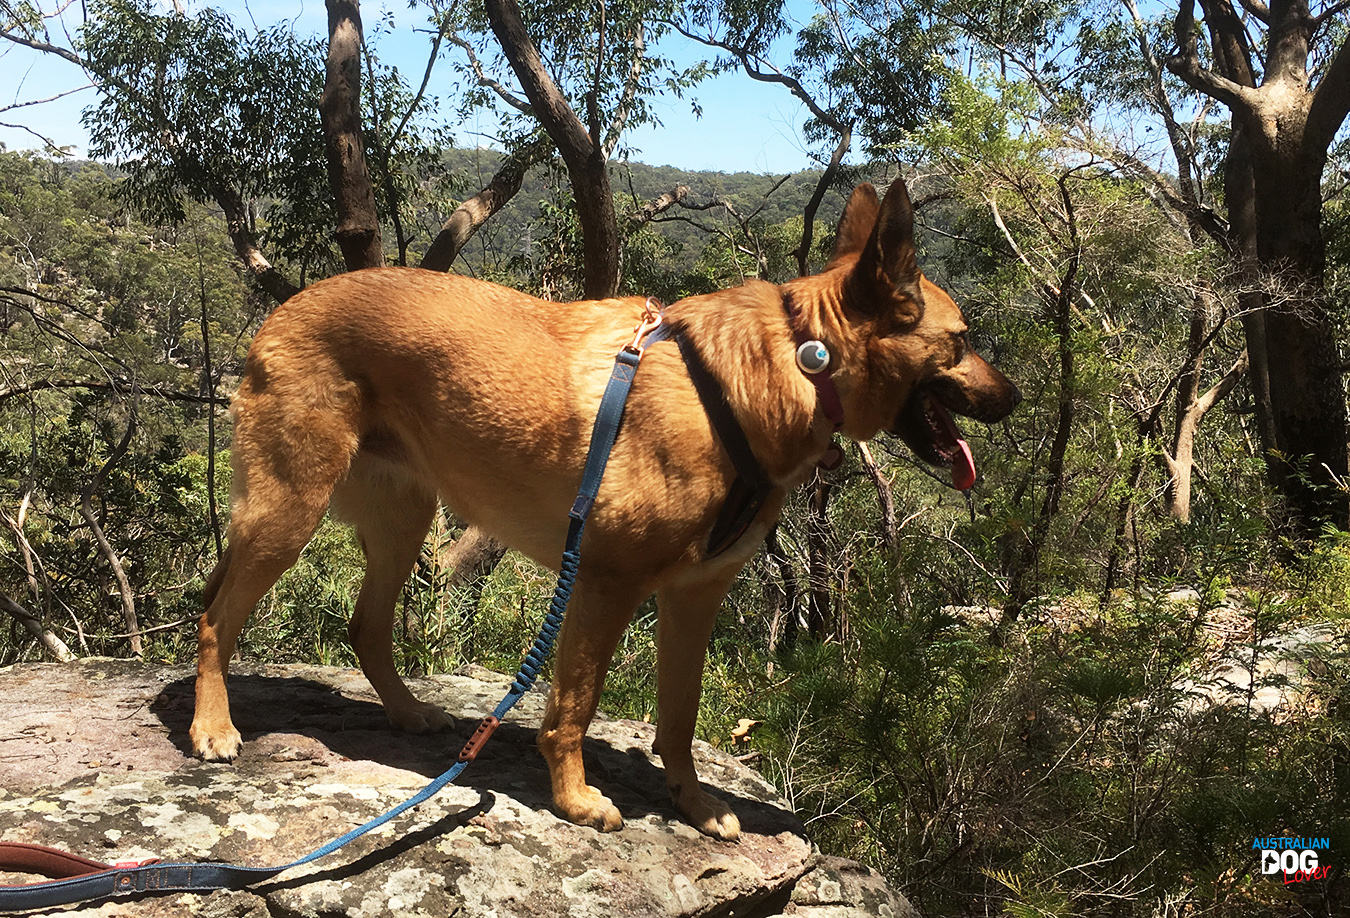 Malinois Aramis overlooks the bush wearing the Animo Dog Activity Monitor on her collar